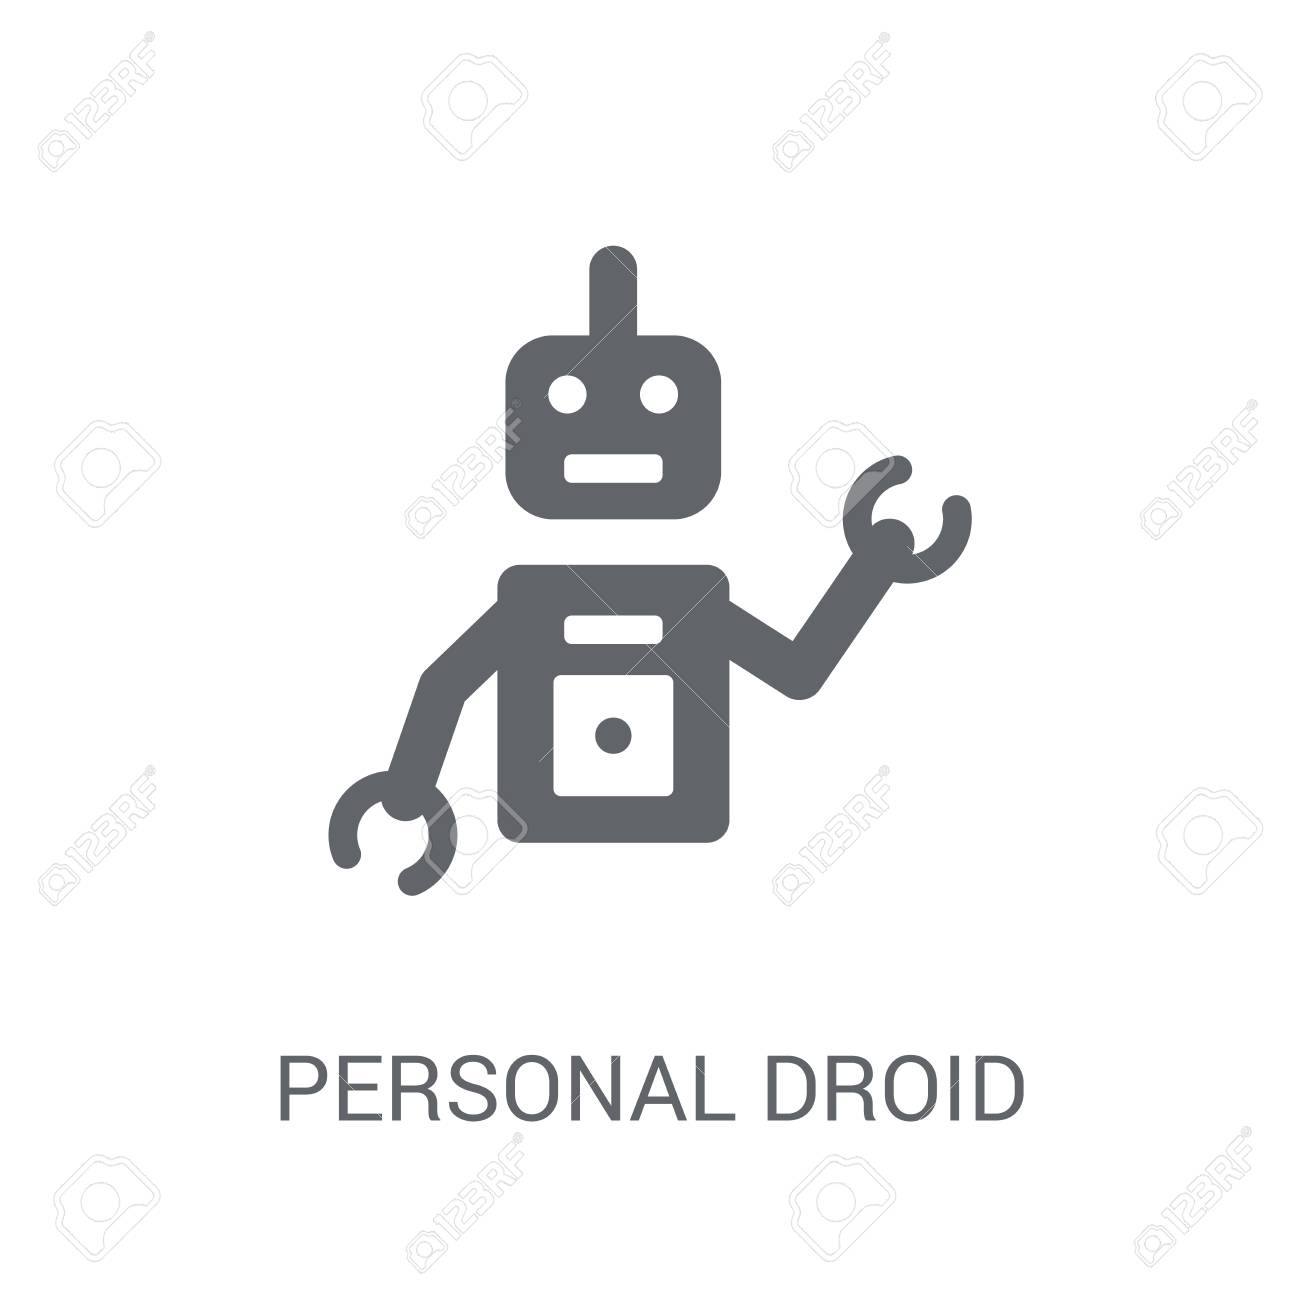 Personal droid icon  Trendy Personal droid logo concept on white